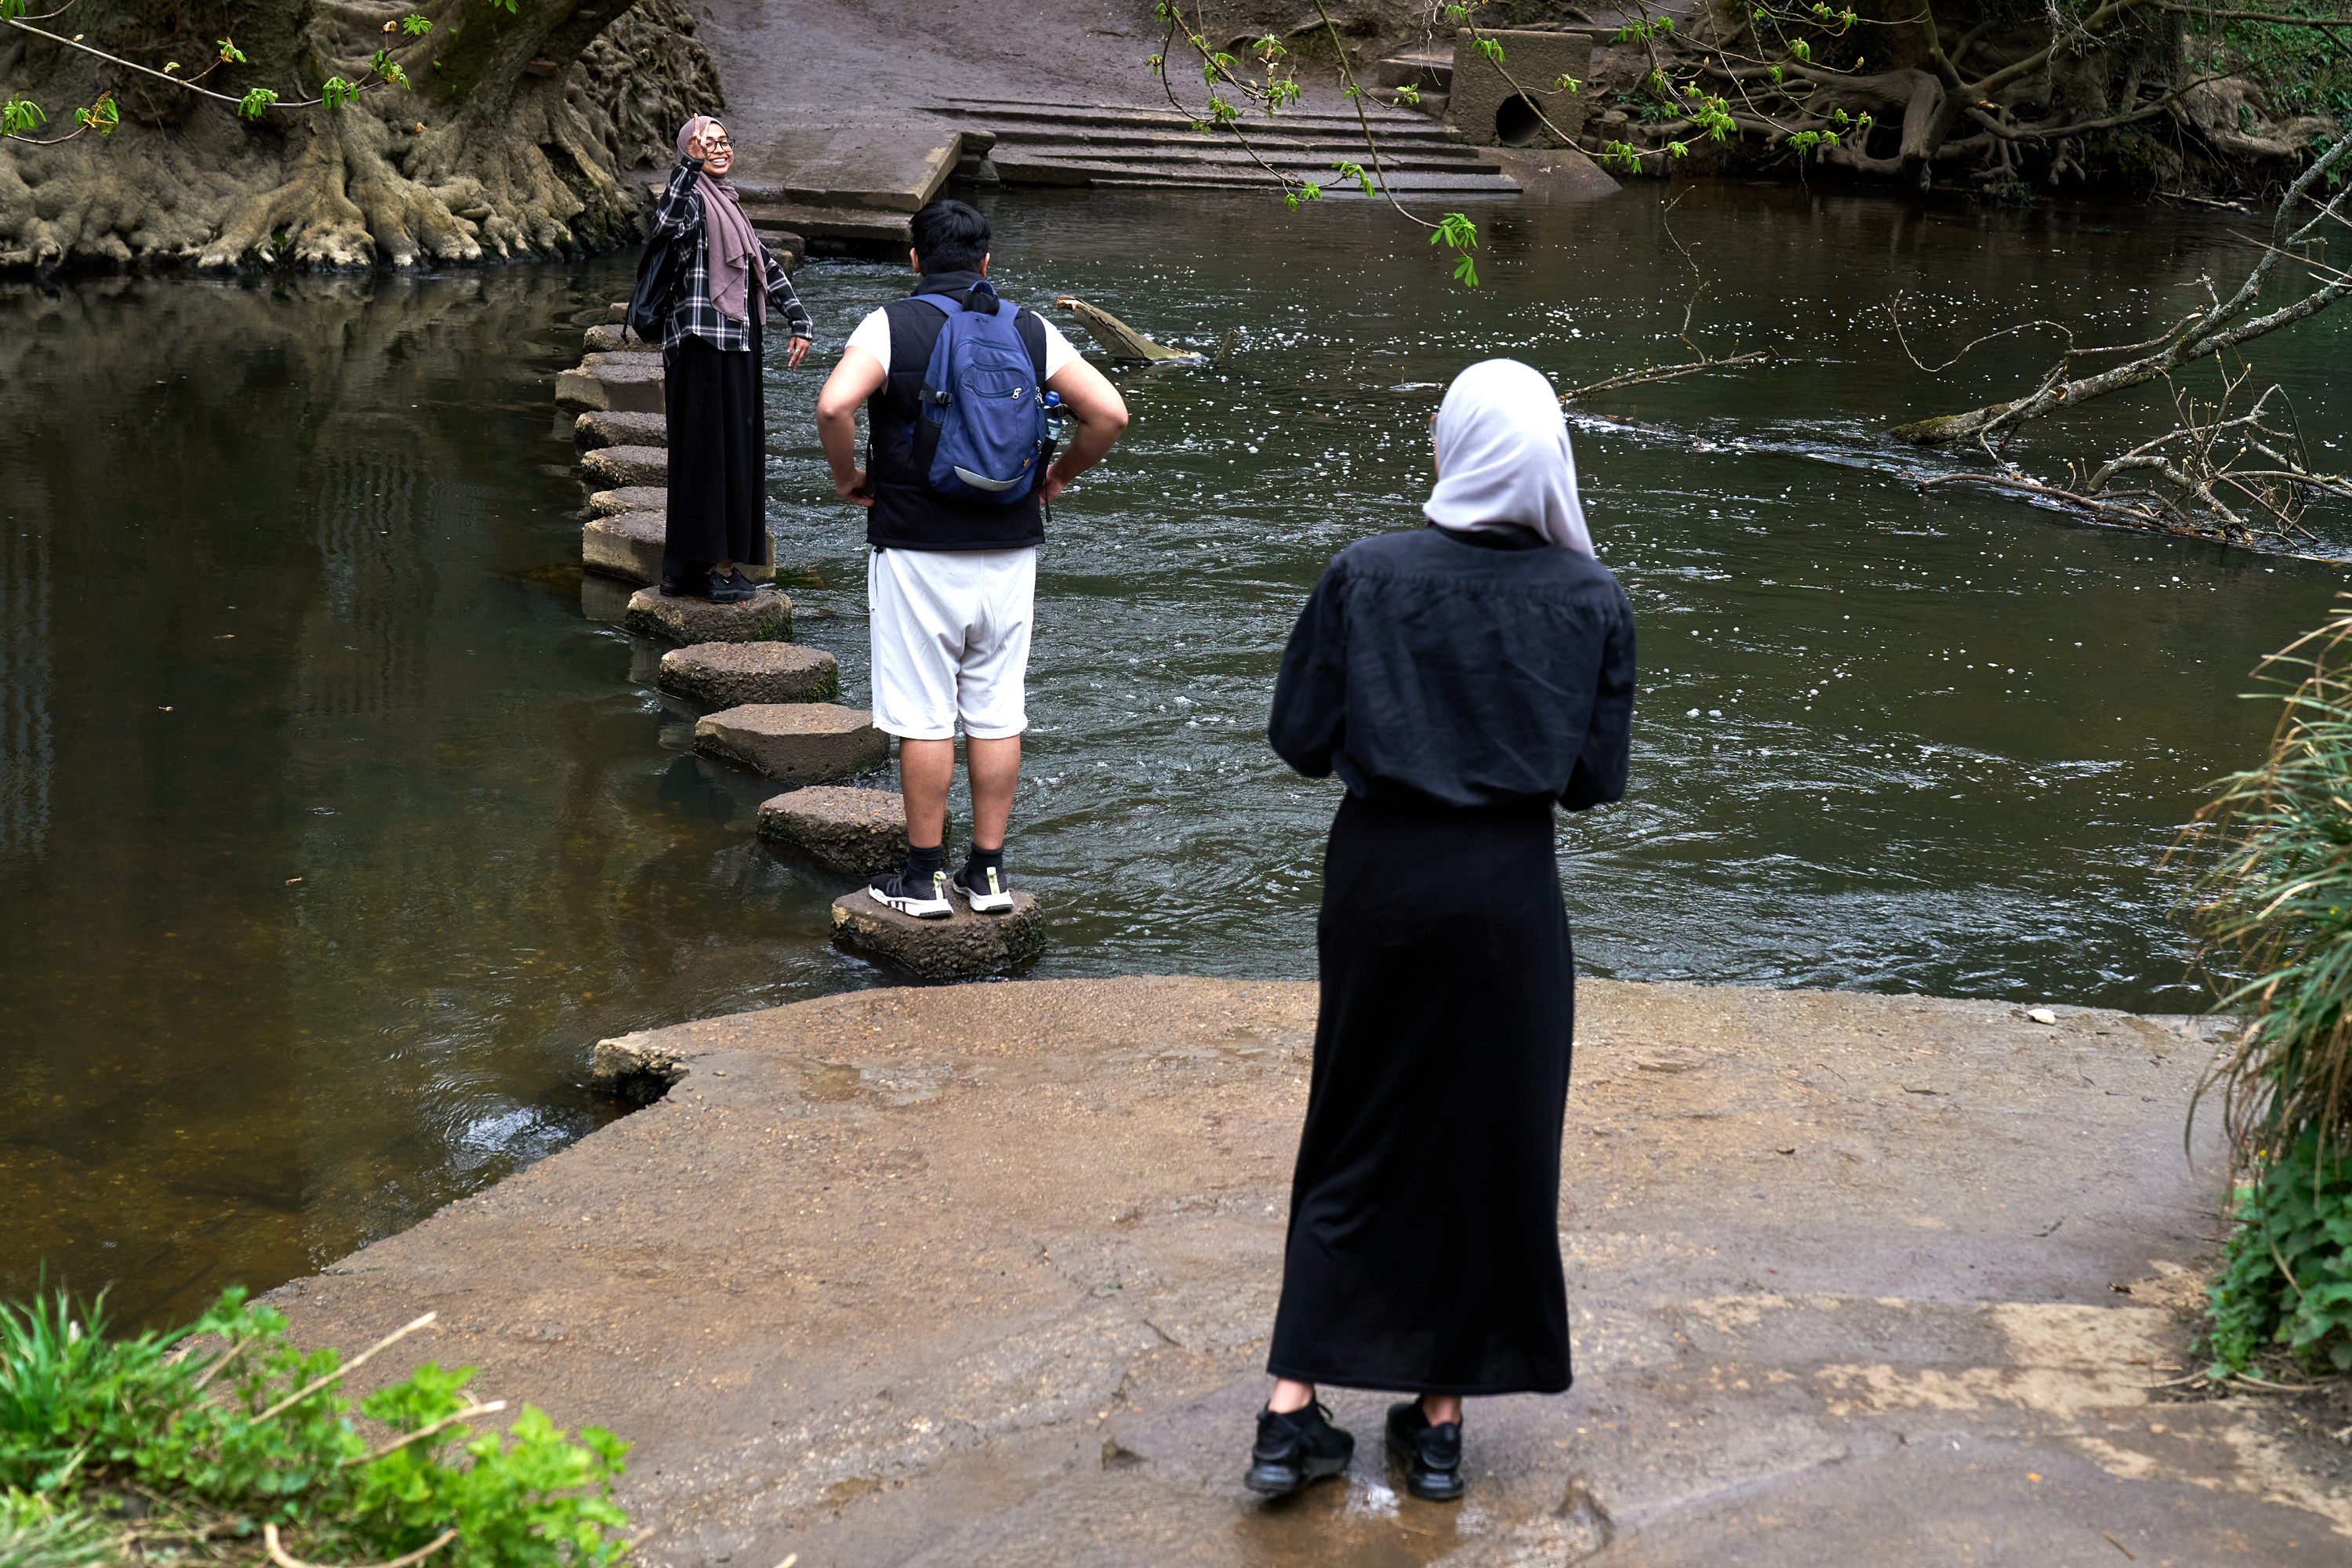 <p>People cross the stepping stones at Box Hill, Surrey during the spell of warm weather. Picture date: Wednesday March 31, 2021.</p>